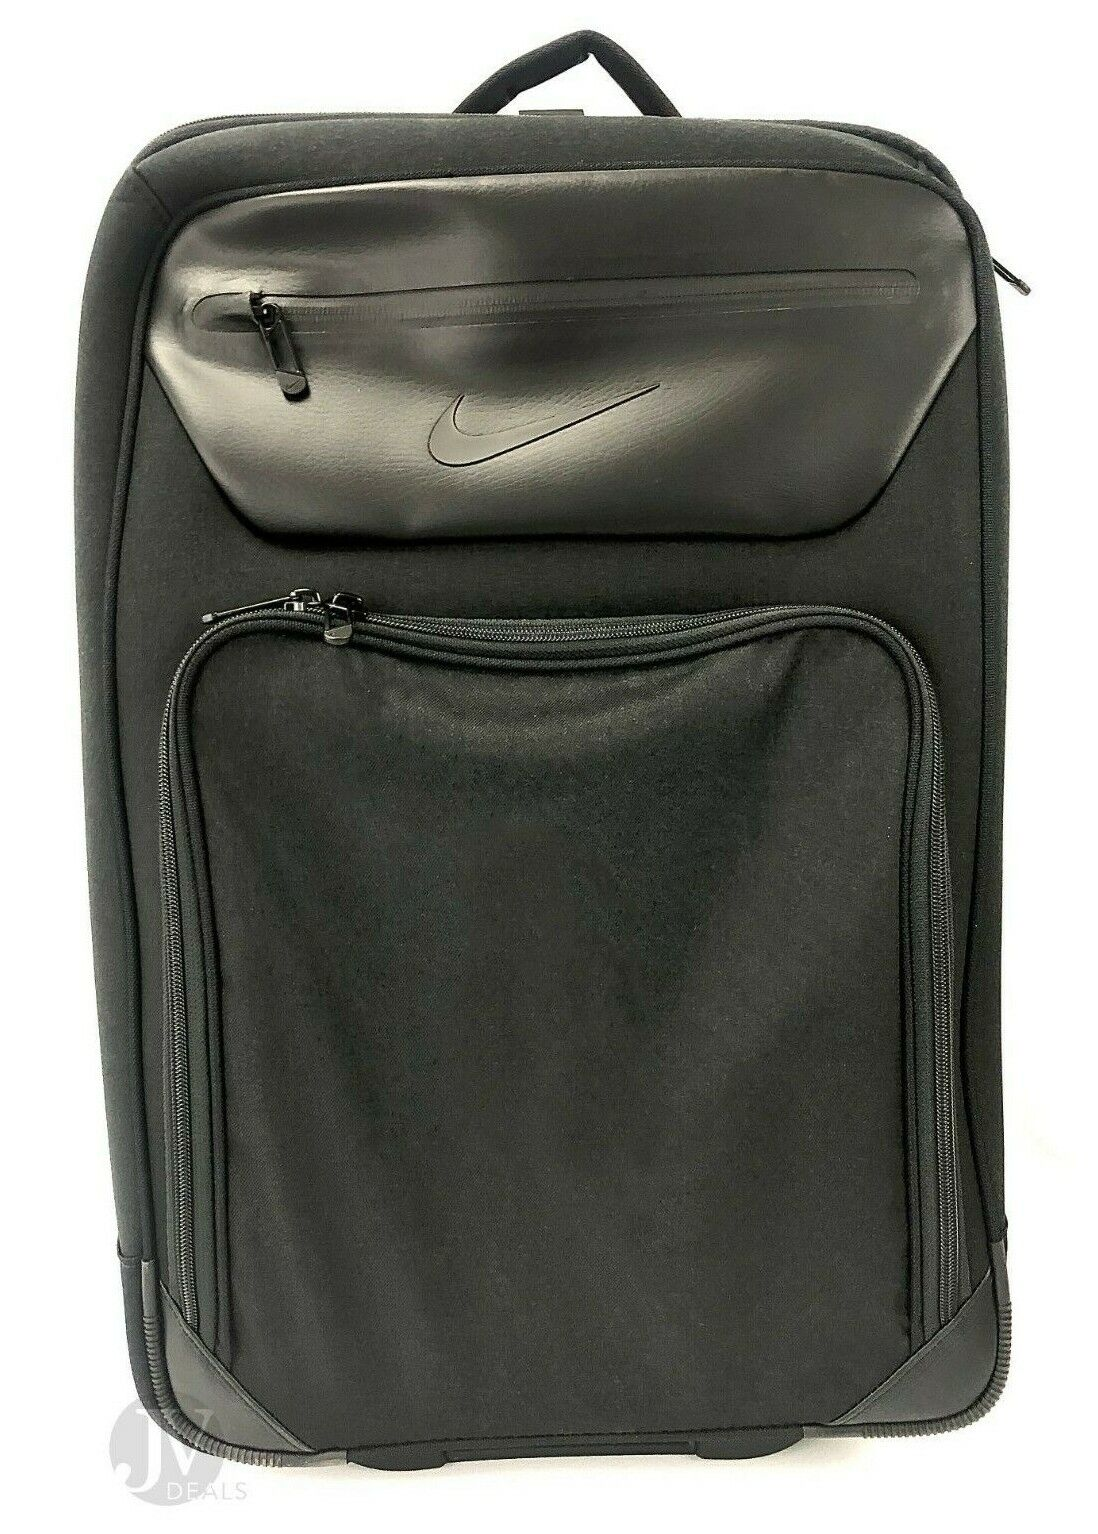 nike-travel-large-departure-roller-trolley-suitcase-carry-on-bag